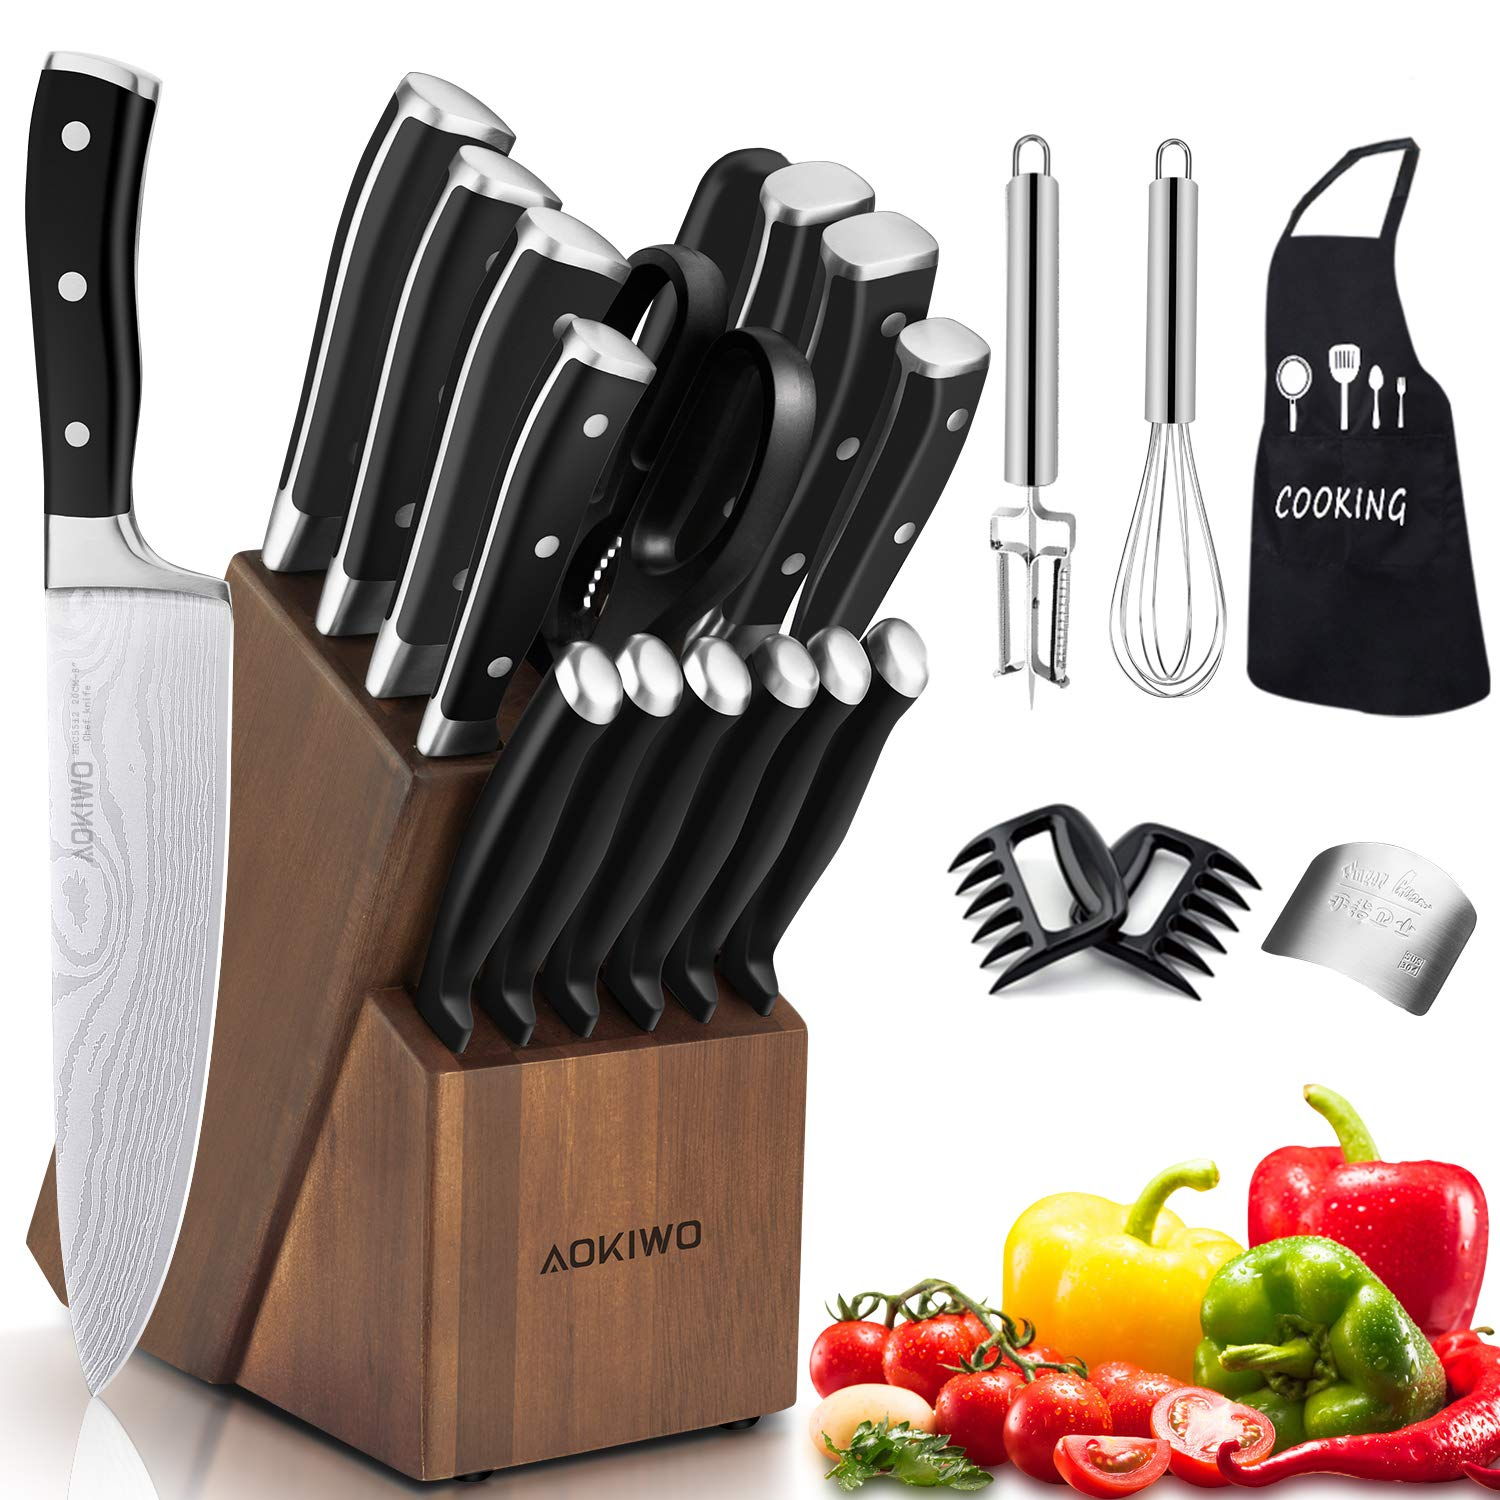 Knife Set, 21-Piece Kitchen Knife Set with Block Wooden, Germany High Carbon Stainless Steel Professional Chef Knife Block Set, Ultra Sharp, Forged, Full-Tang by MAO MAO JEWELRY